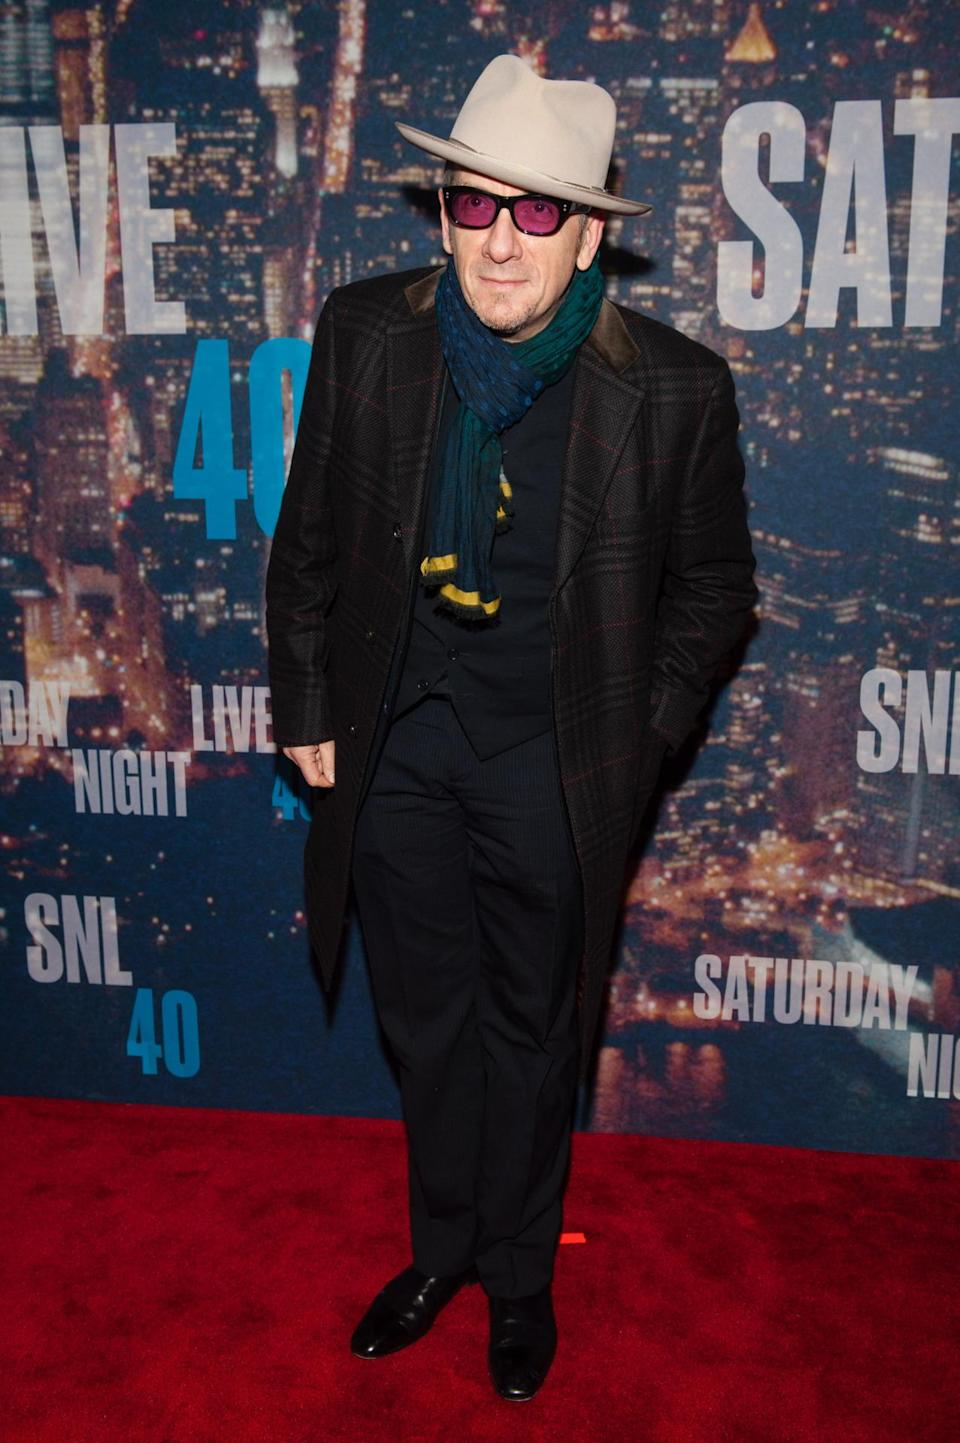 Elvis Costello must secretly be attending New York Fashion Week — or following along at home — because his outfit, from the wide-brimmed hat, to plaid coat, and tinted glasses, are just so trendy.